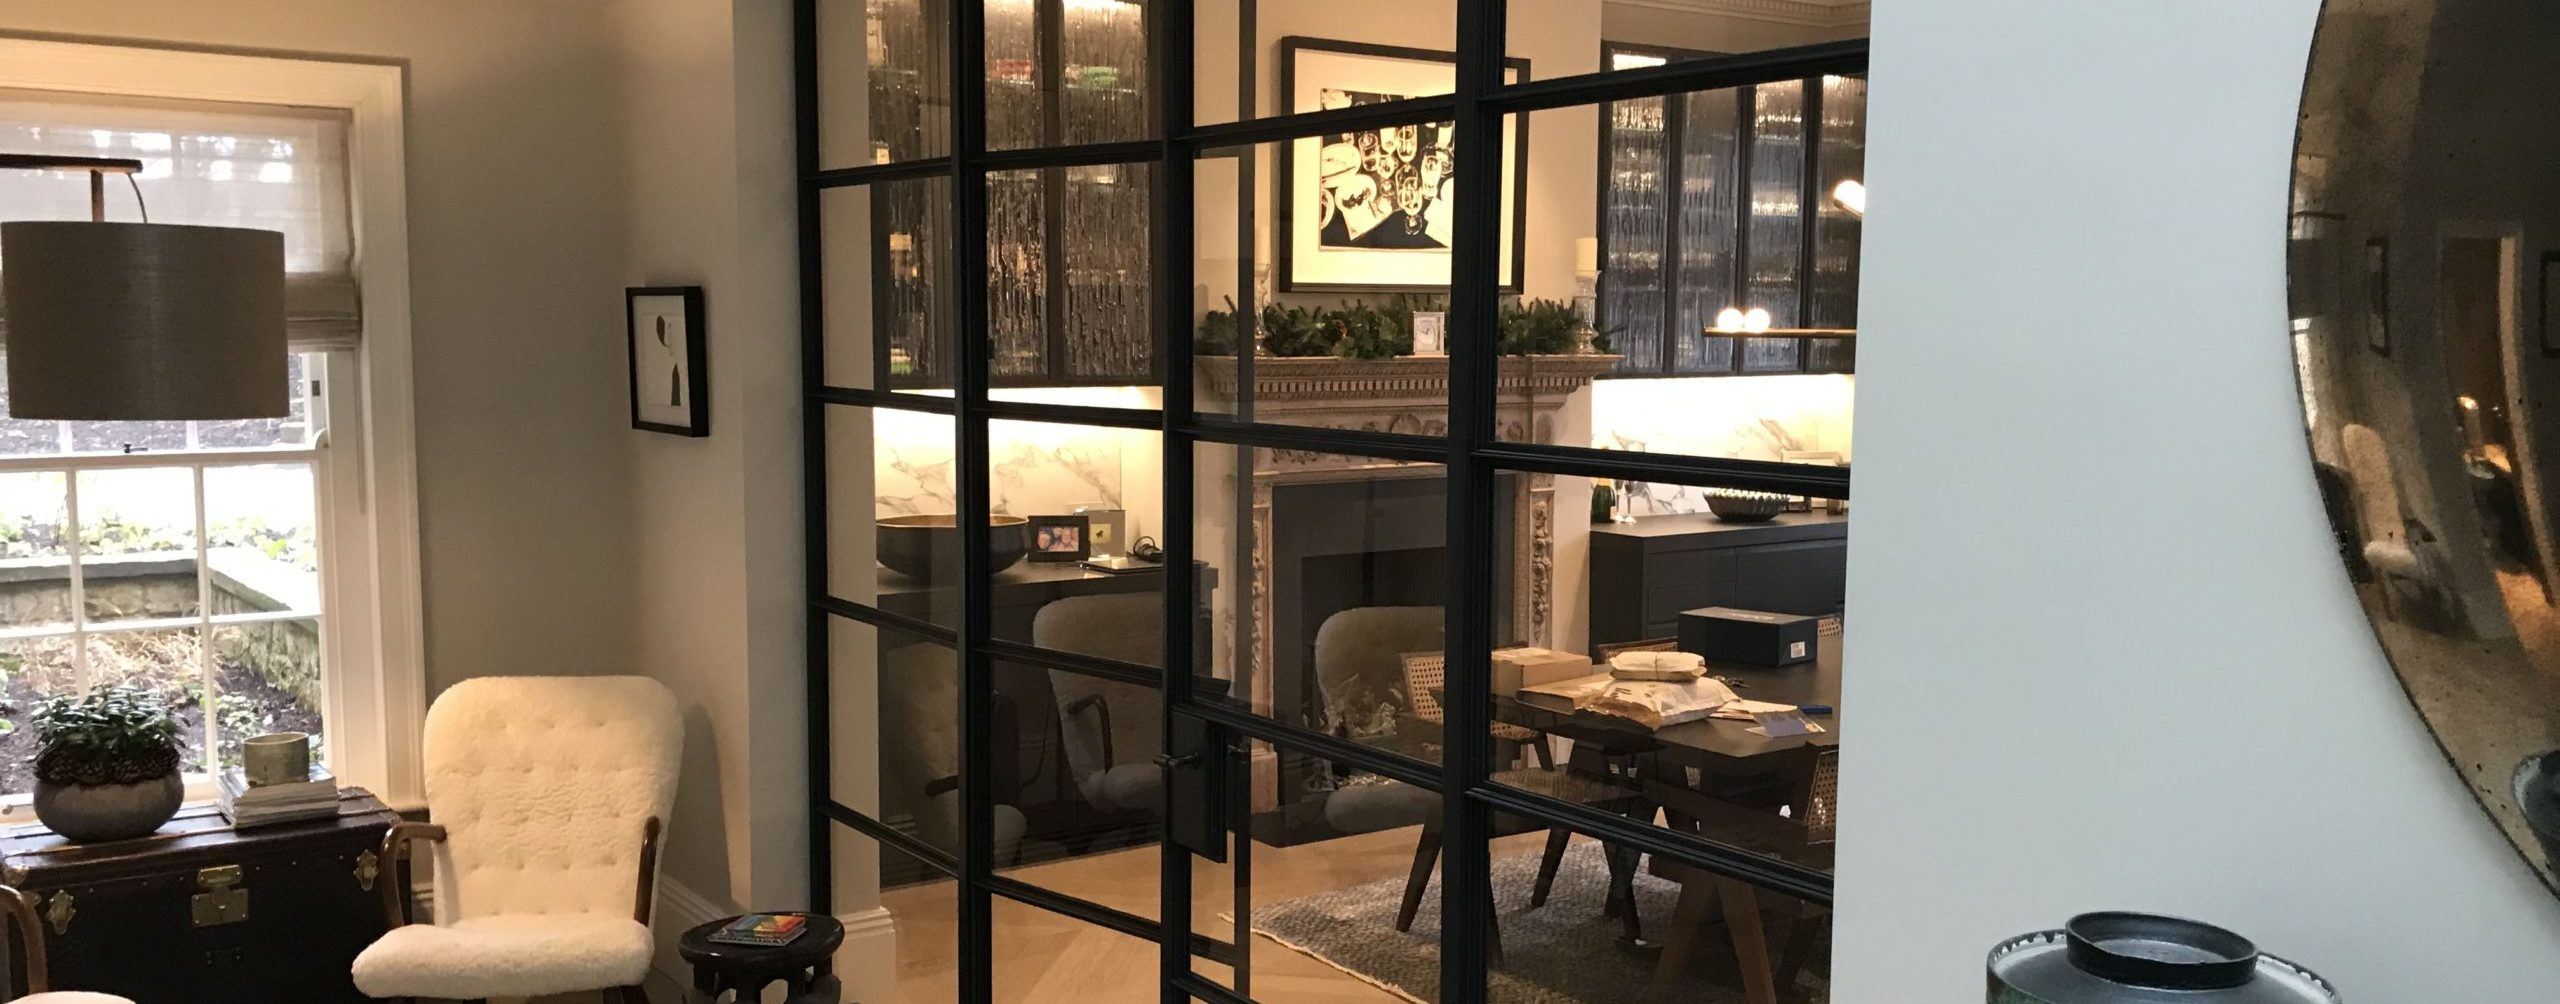 Design Plus steel doors crittall style HG5a 1